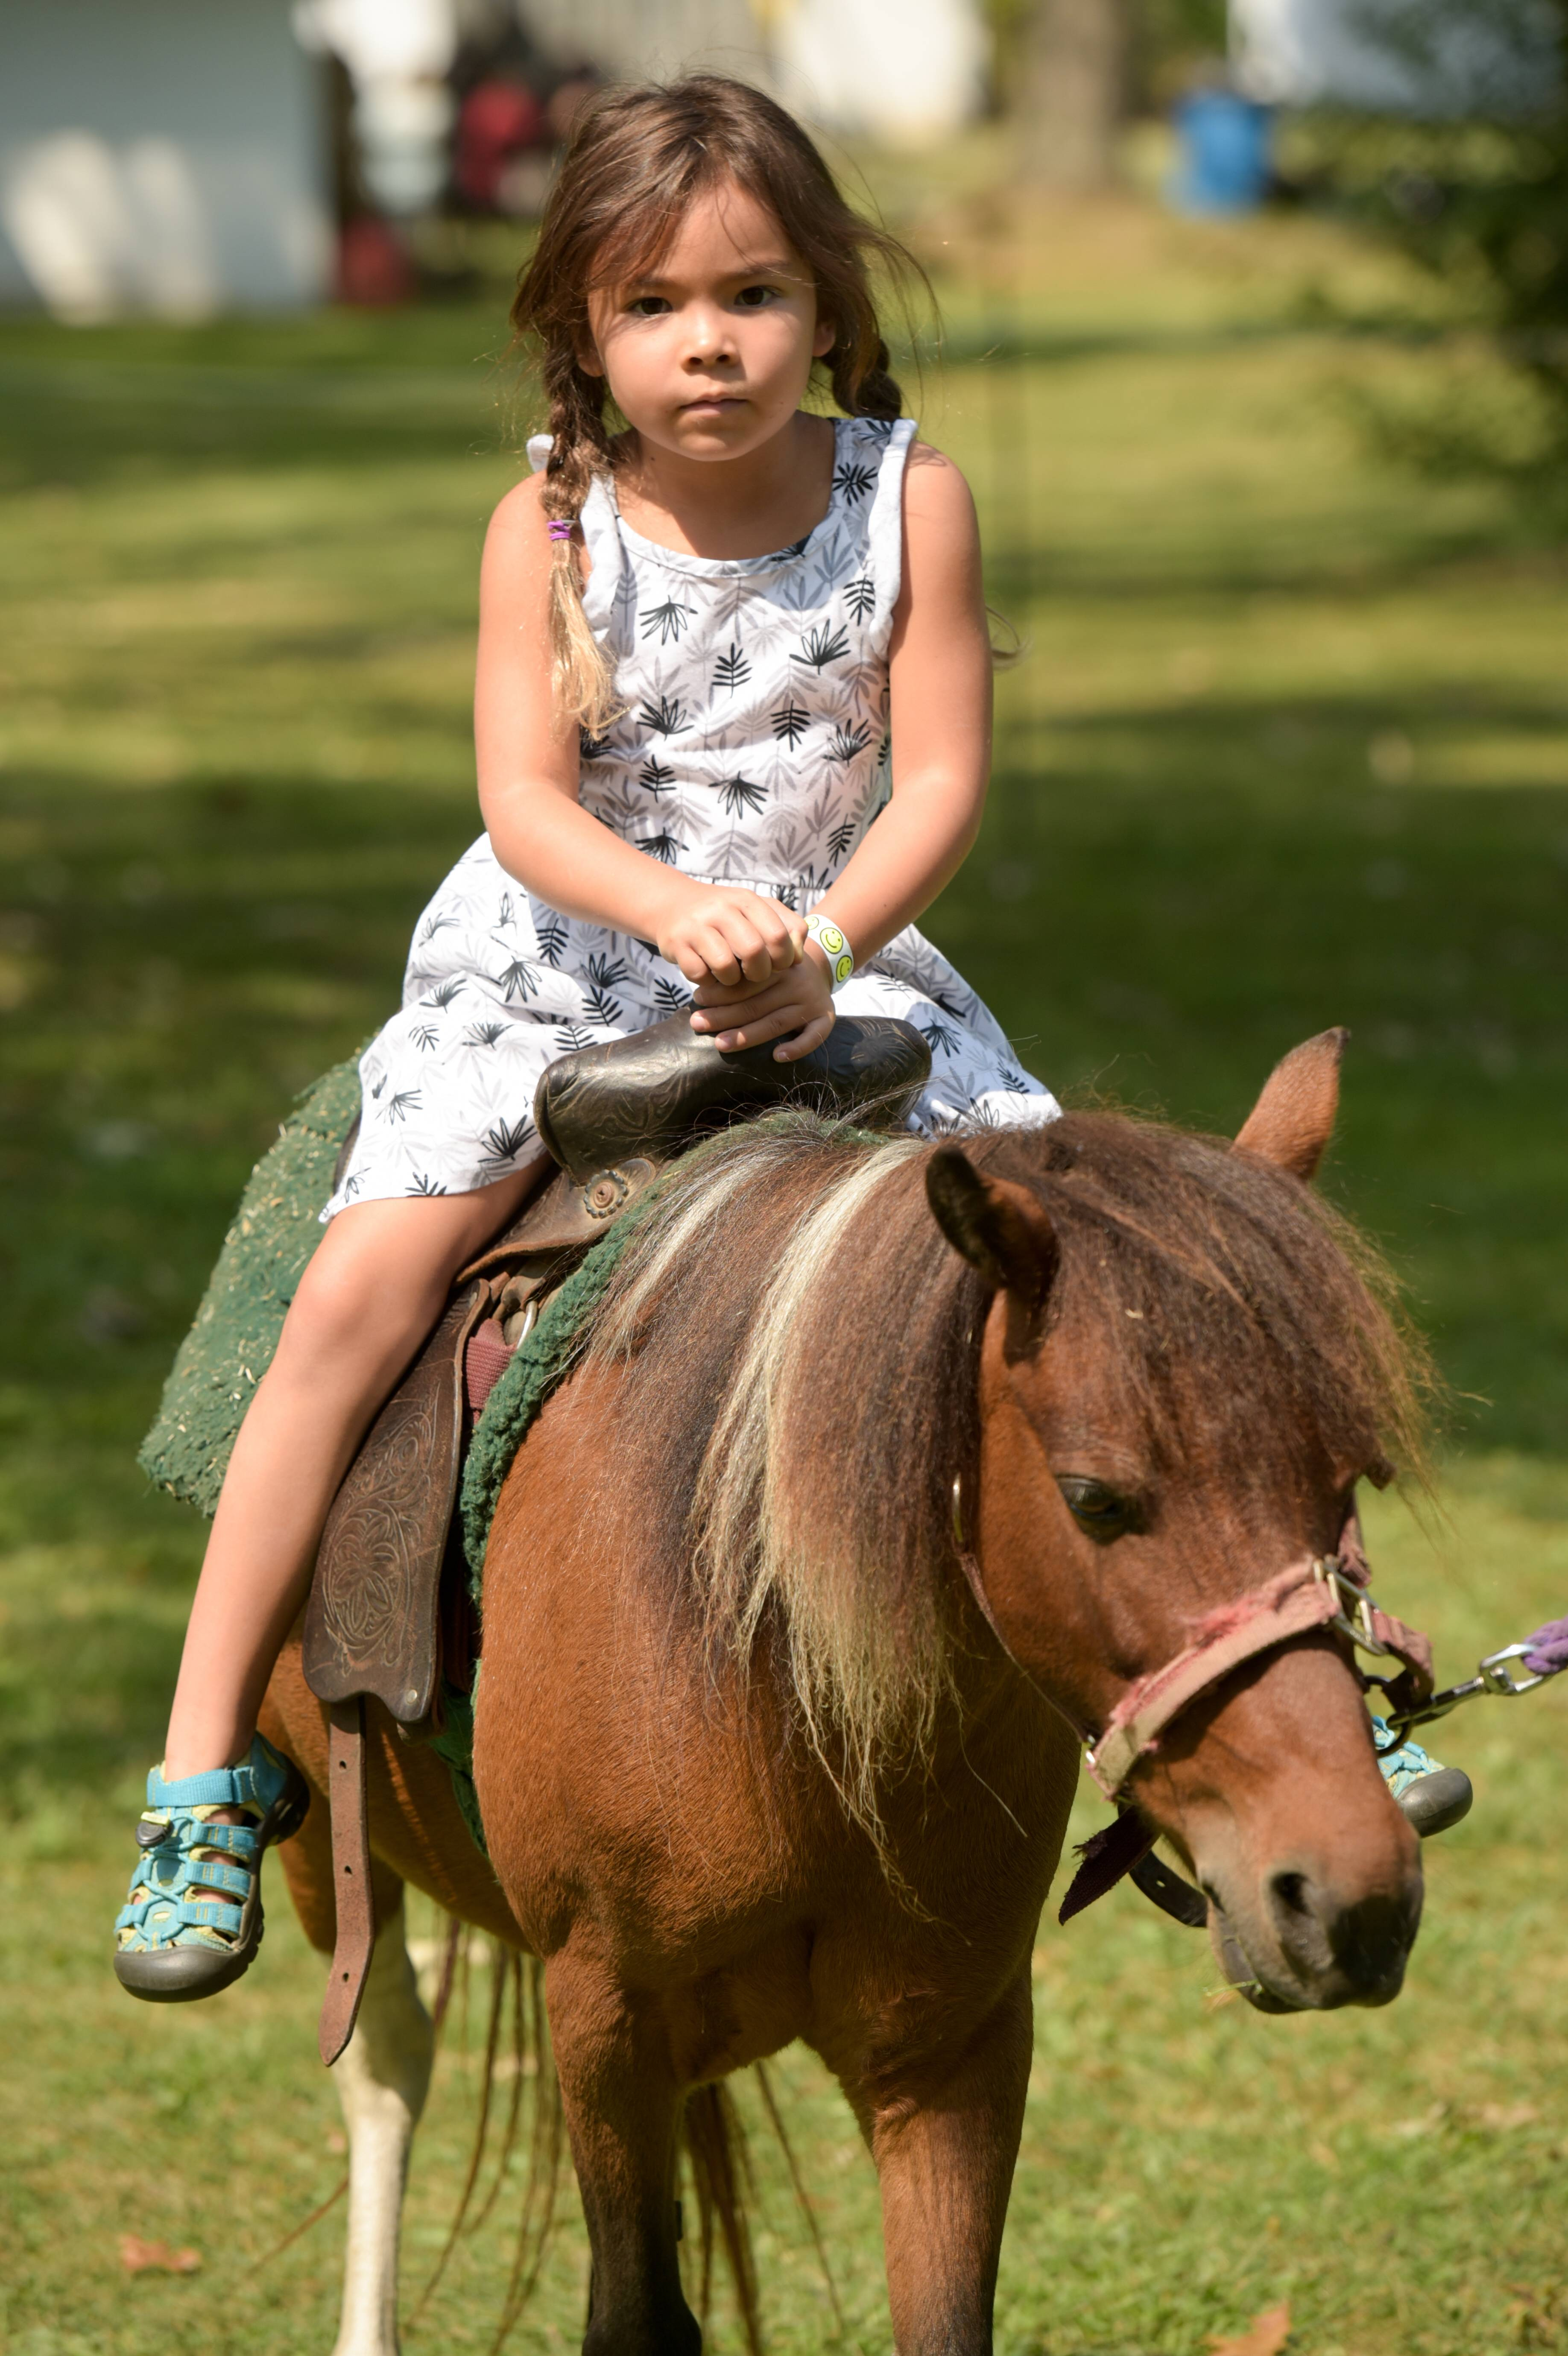 Kylie Schoenknecht, 5, of Elgin rides a pony during the 38th Annual Scandinavian Day Festival Sunday in South Elgin.